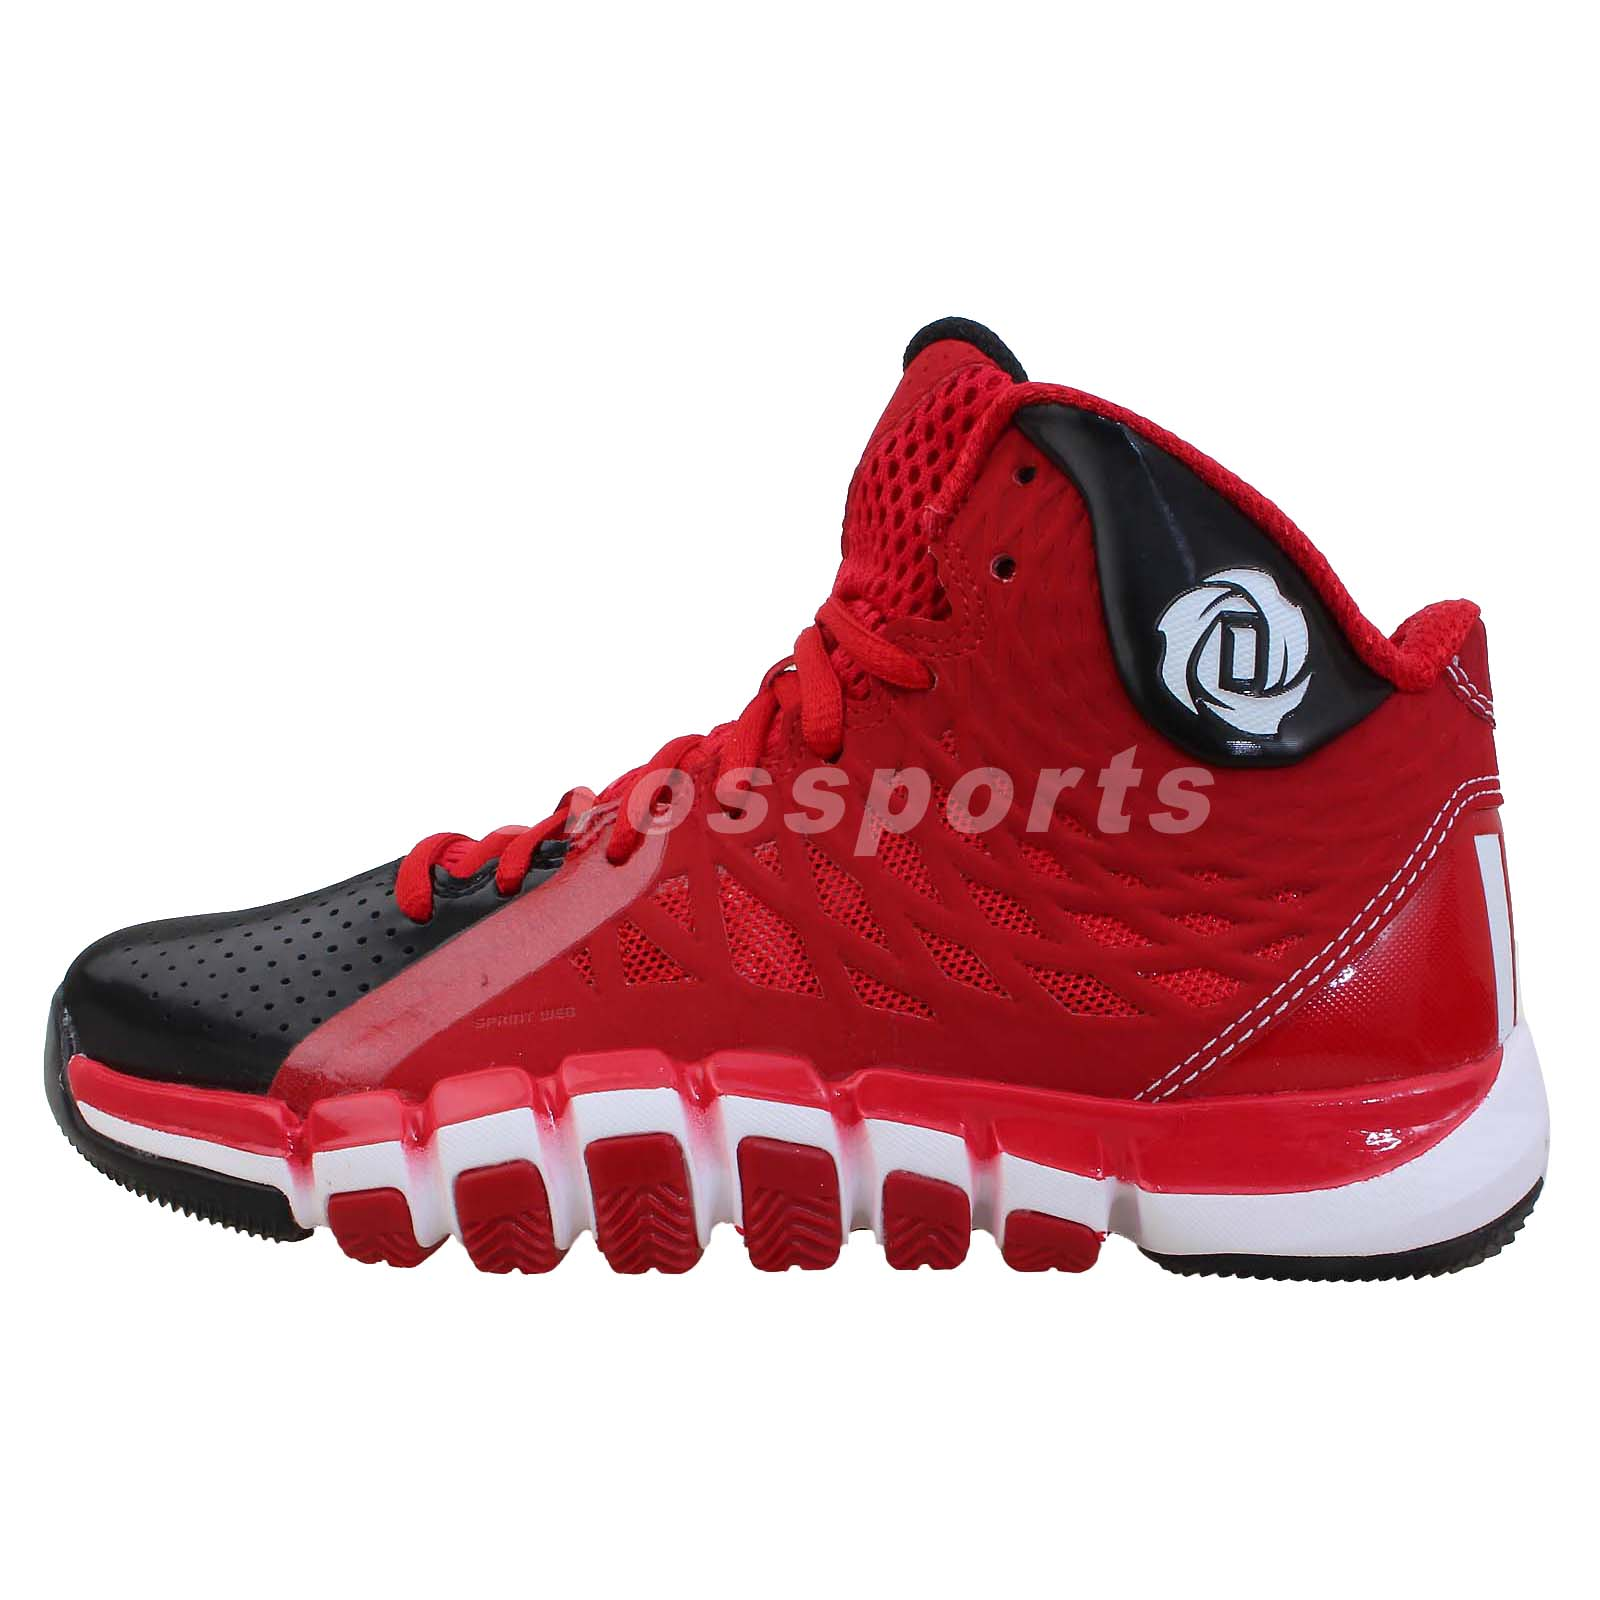 Adidas Basketball Shoes For Boys hollybushwitney.co.uk